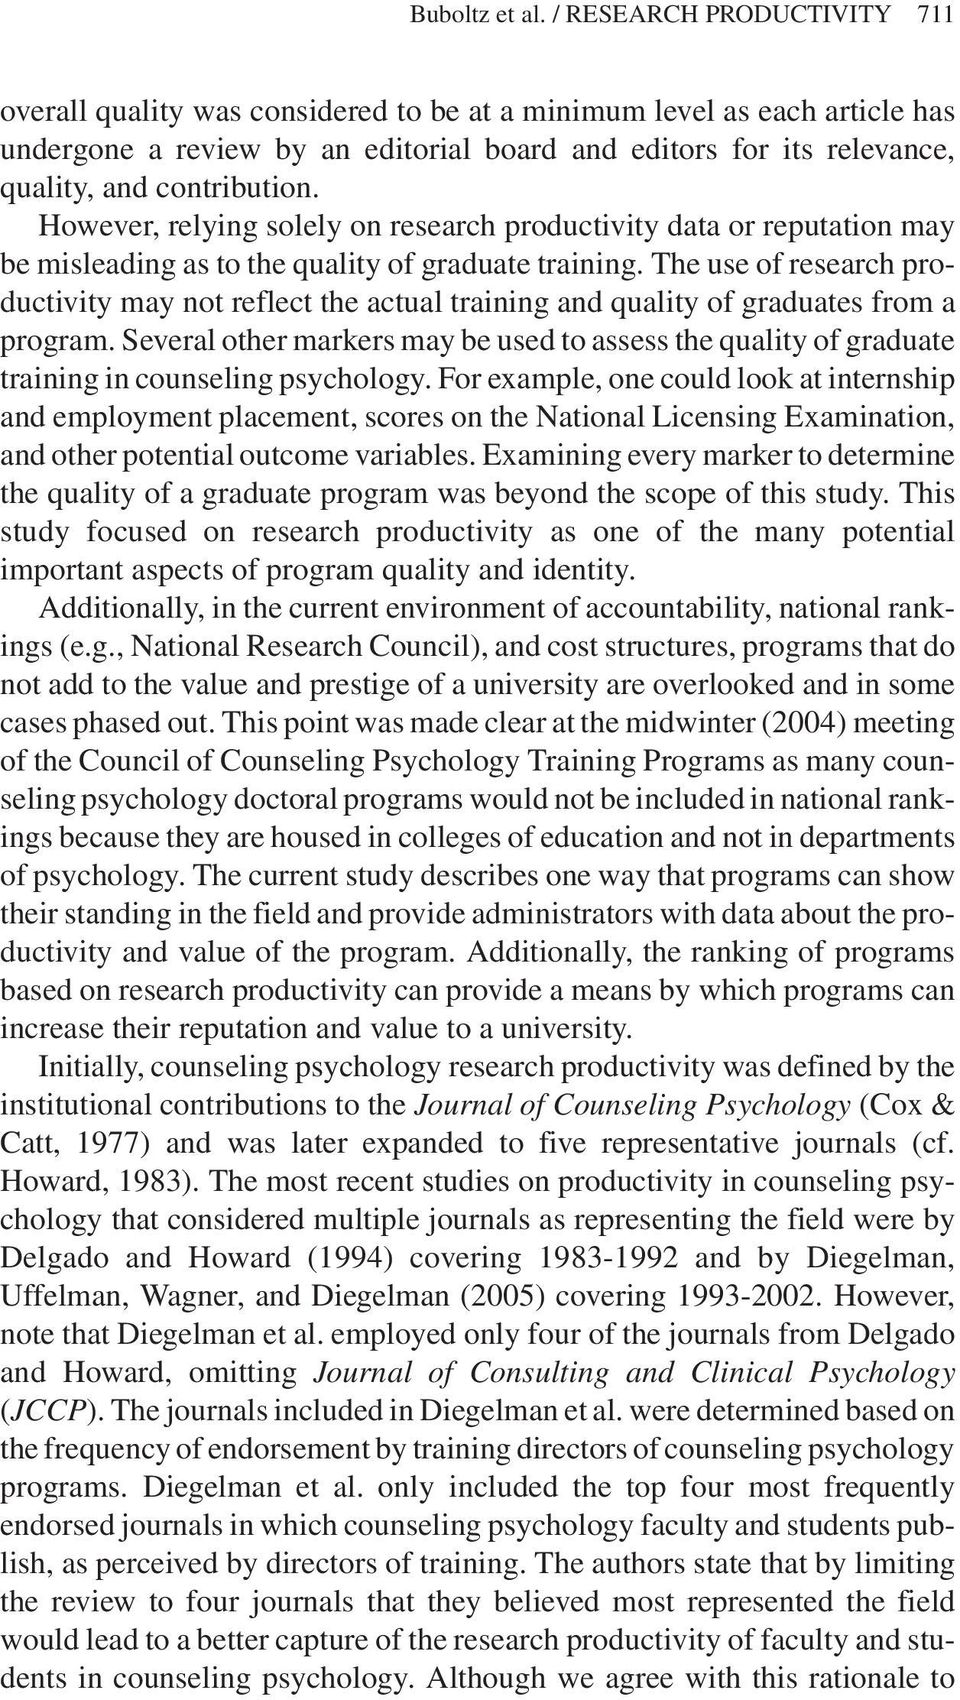 contribution. However, relying solely on research productivity data or reputation may be misleading as to the quality of graduate training.